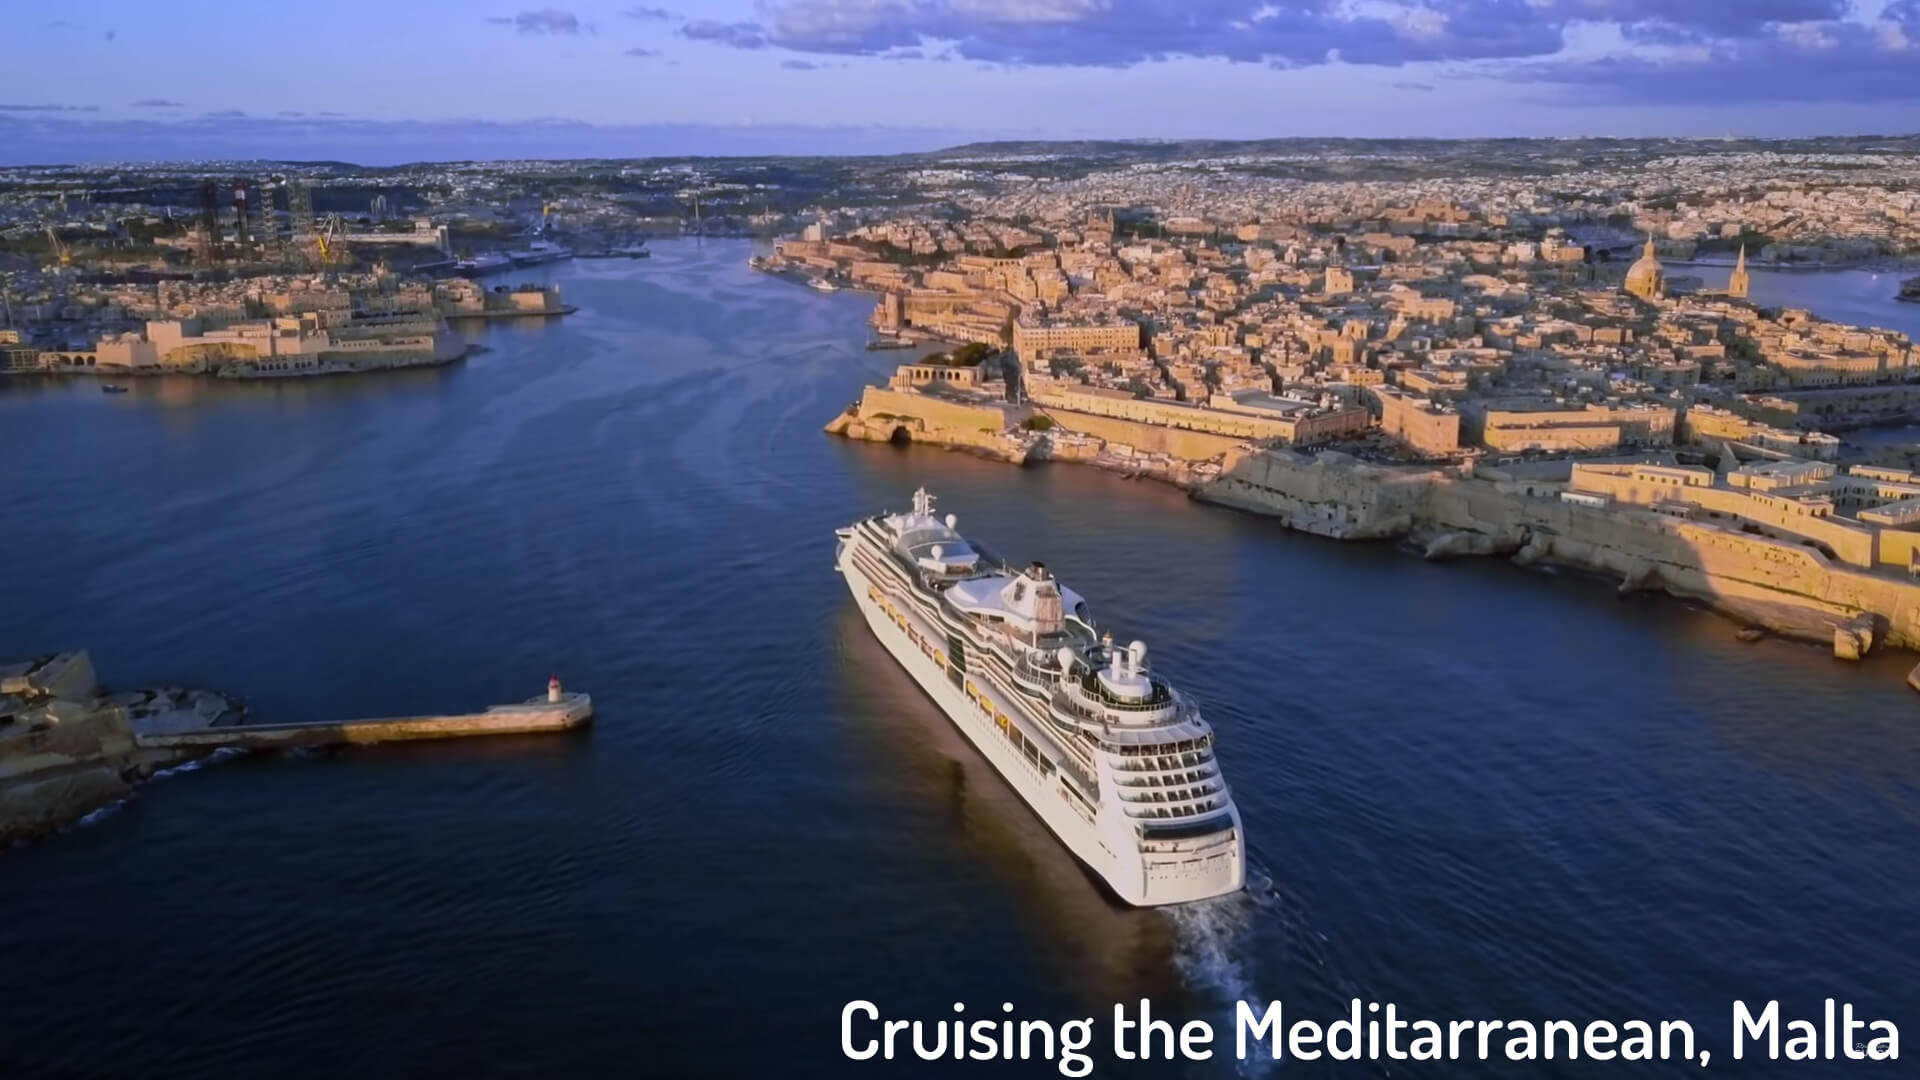 Cruising the Meditarranean, Malta